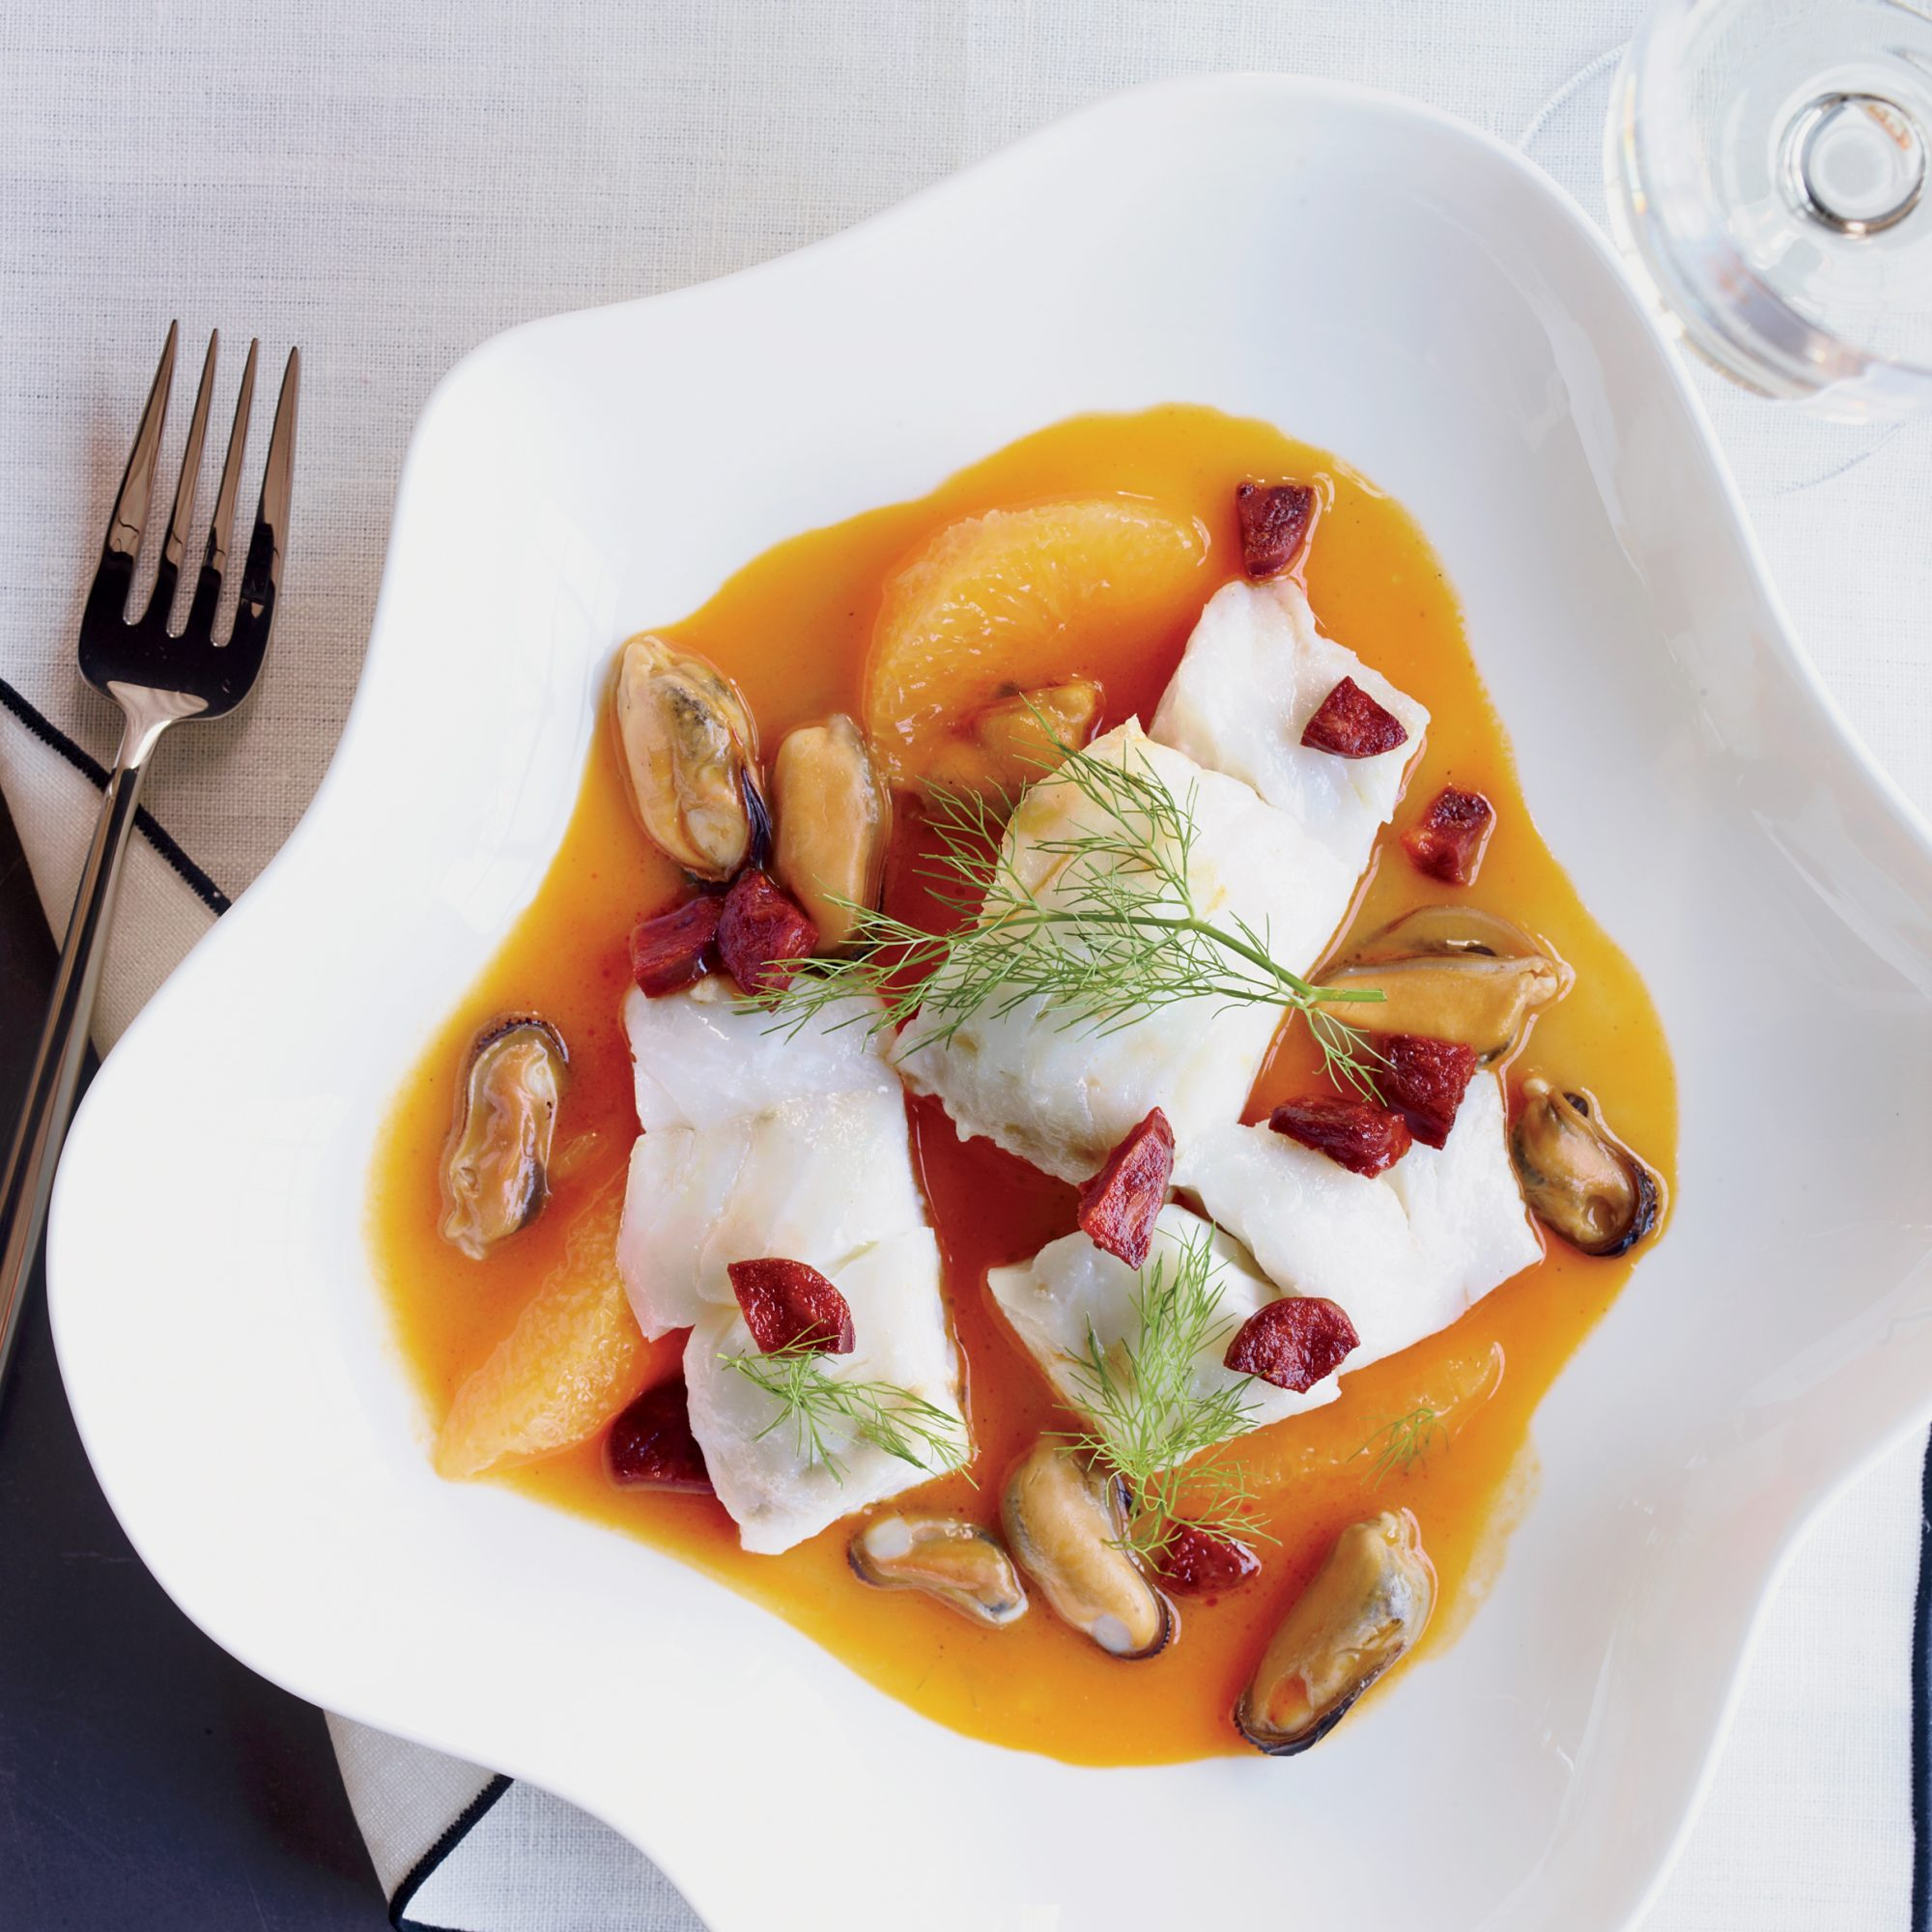 images-sys-201201-r-olive-oil-poached-cod-with-mussels-orange-and-chorizo.jpg